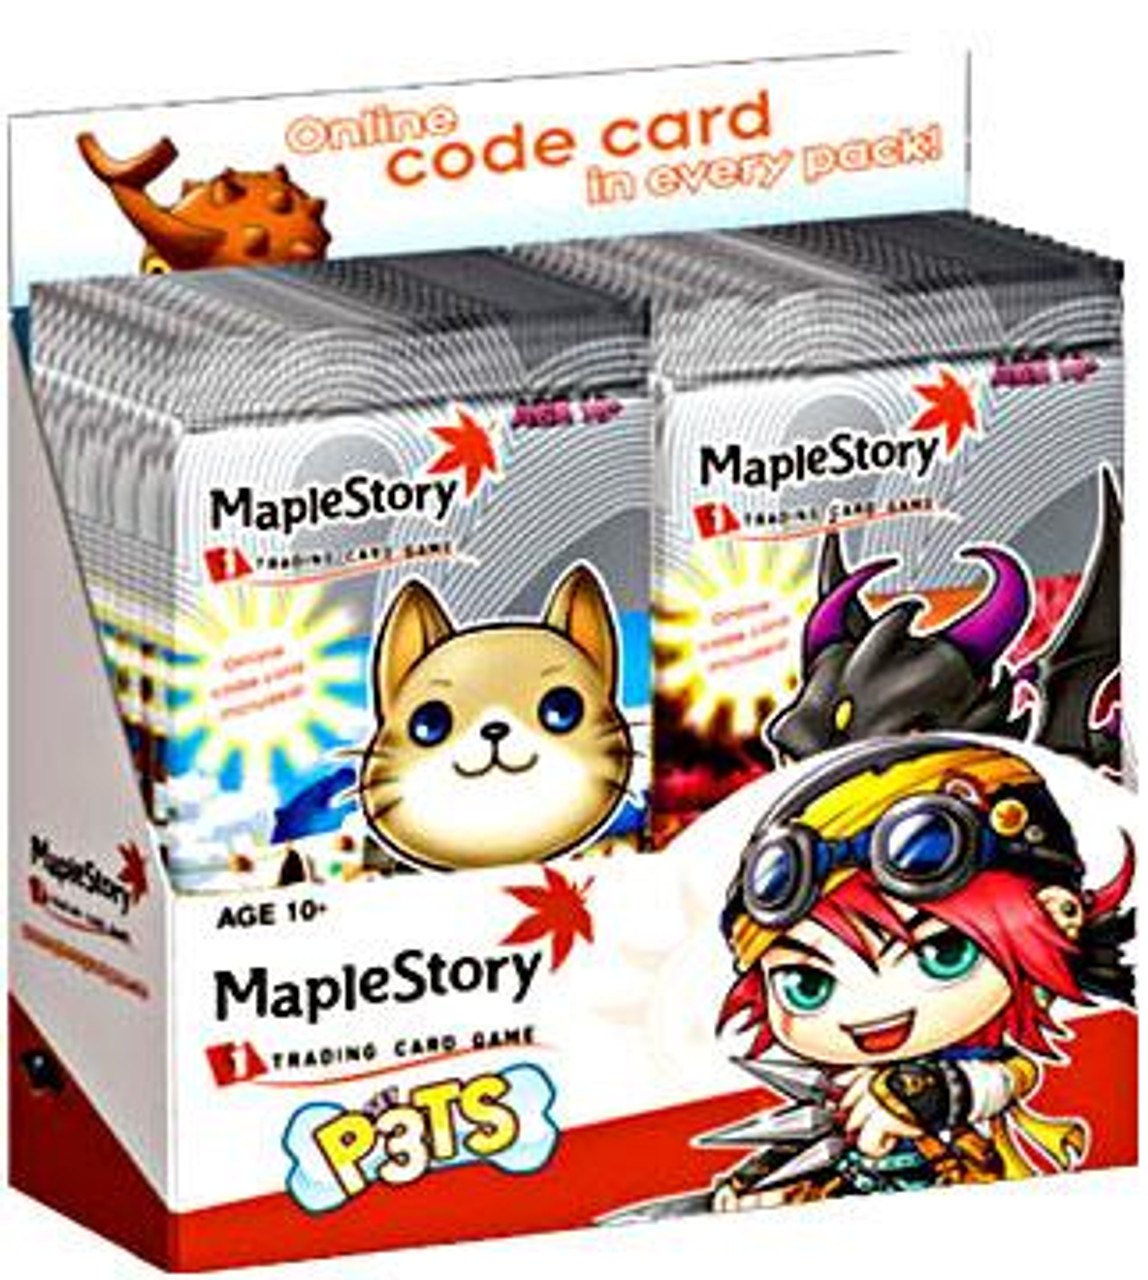 Maple Story Trading Card Game P3ts (Pets) Booster Box [24 Packs]